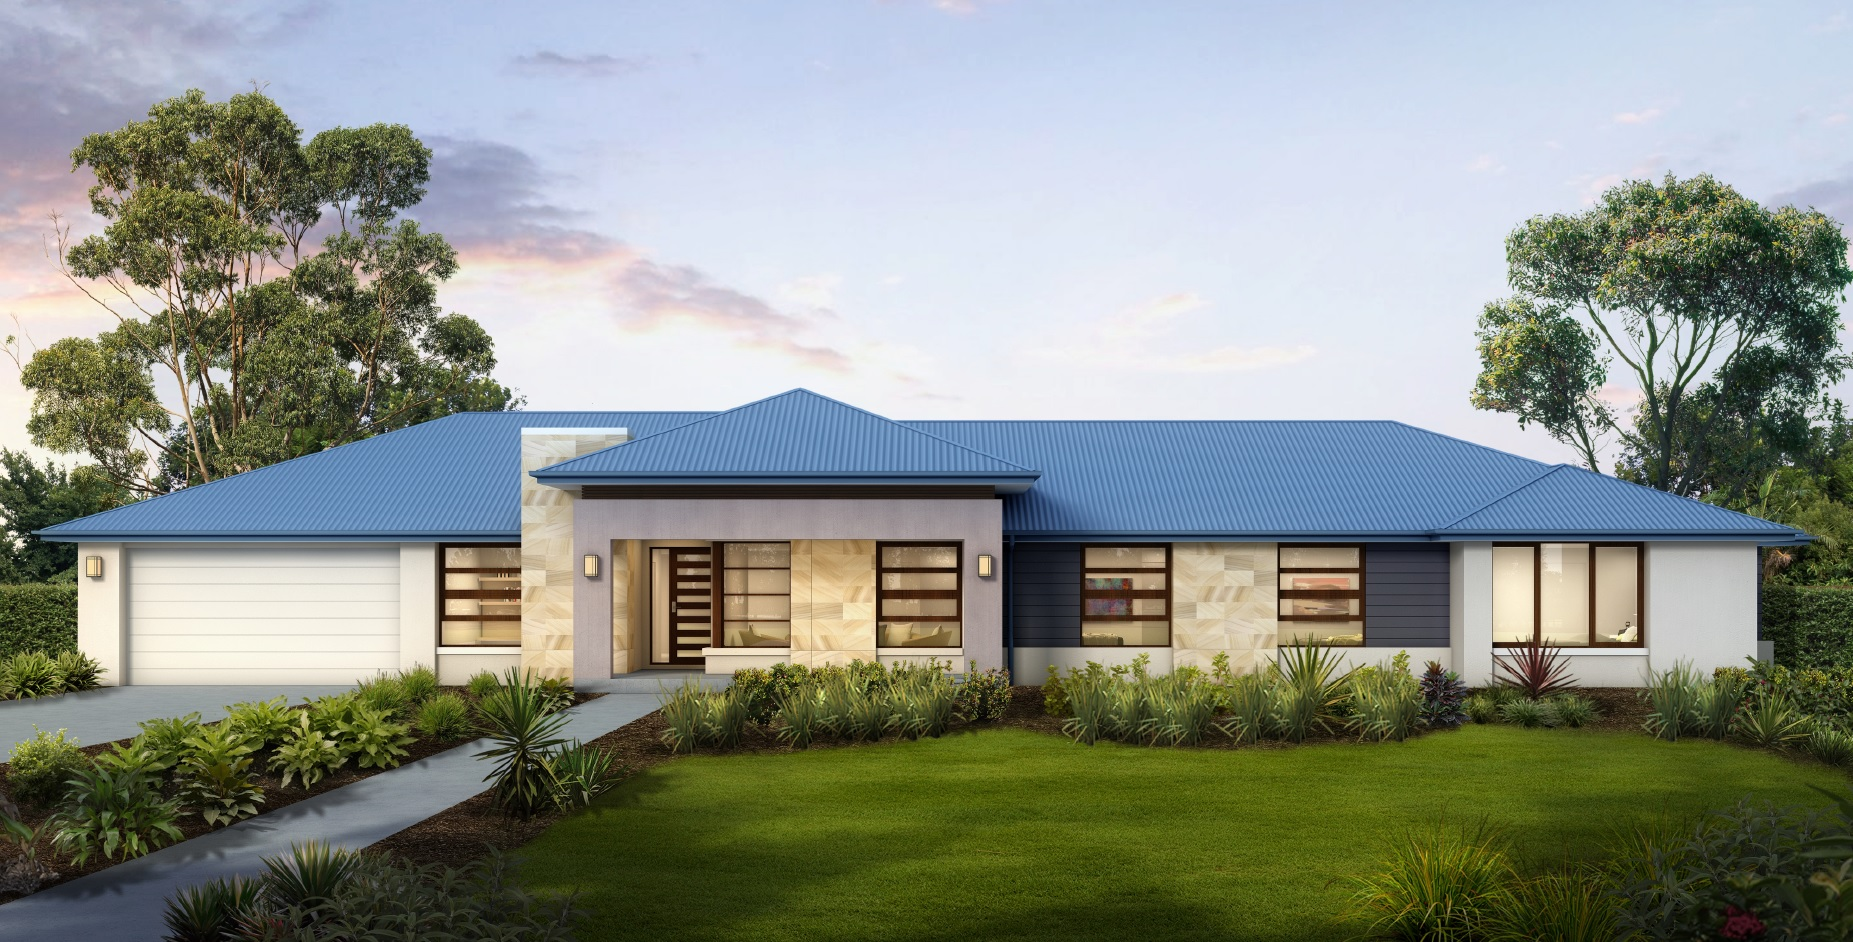 Design Your Own Home Nsw Fleming Street Pitt Town Off The Plan House For Sale